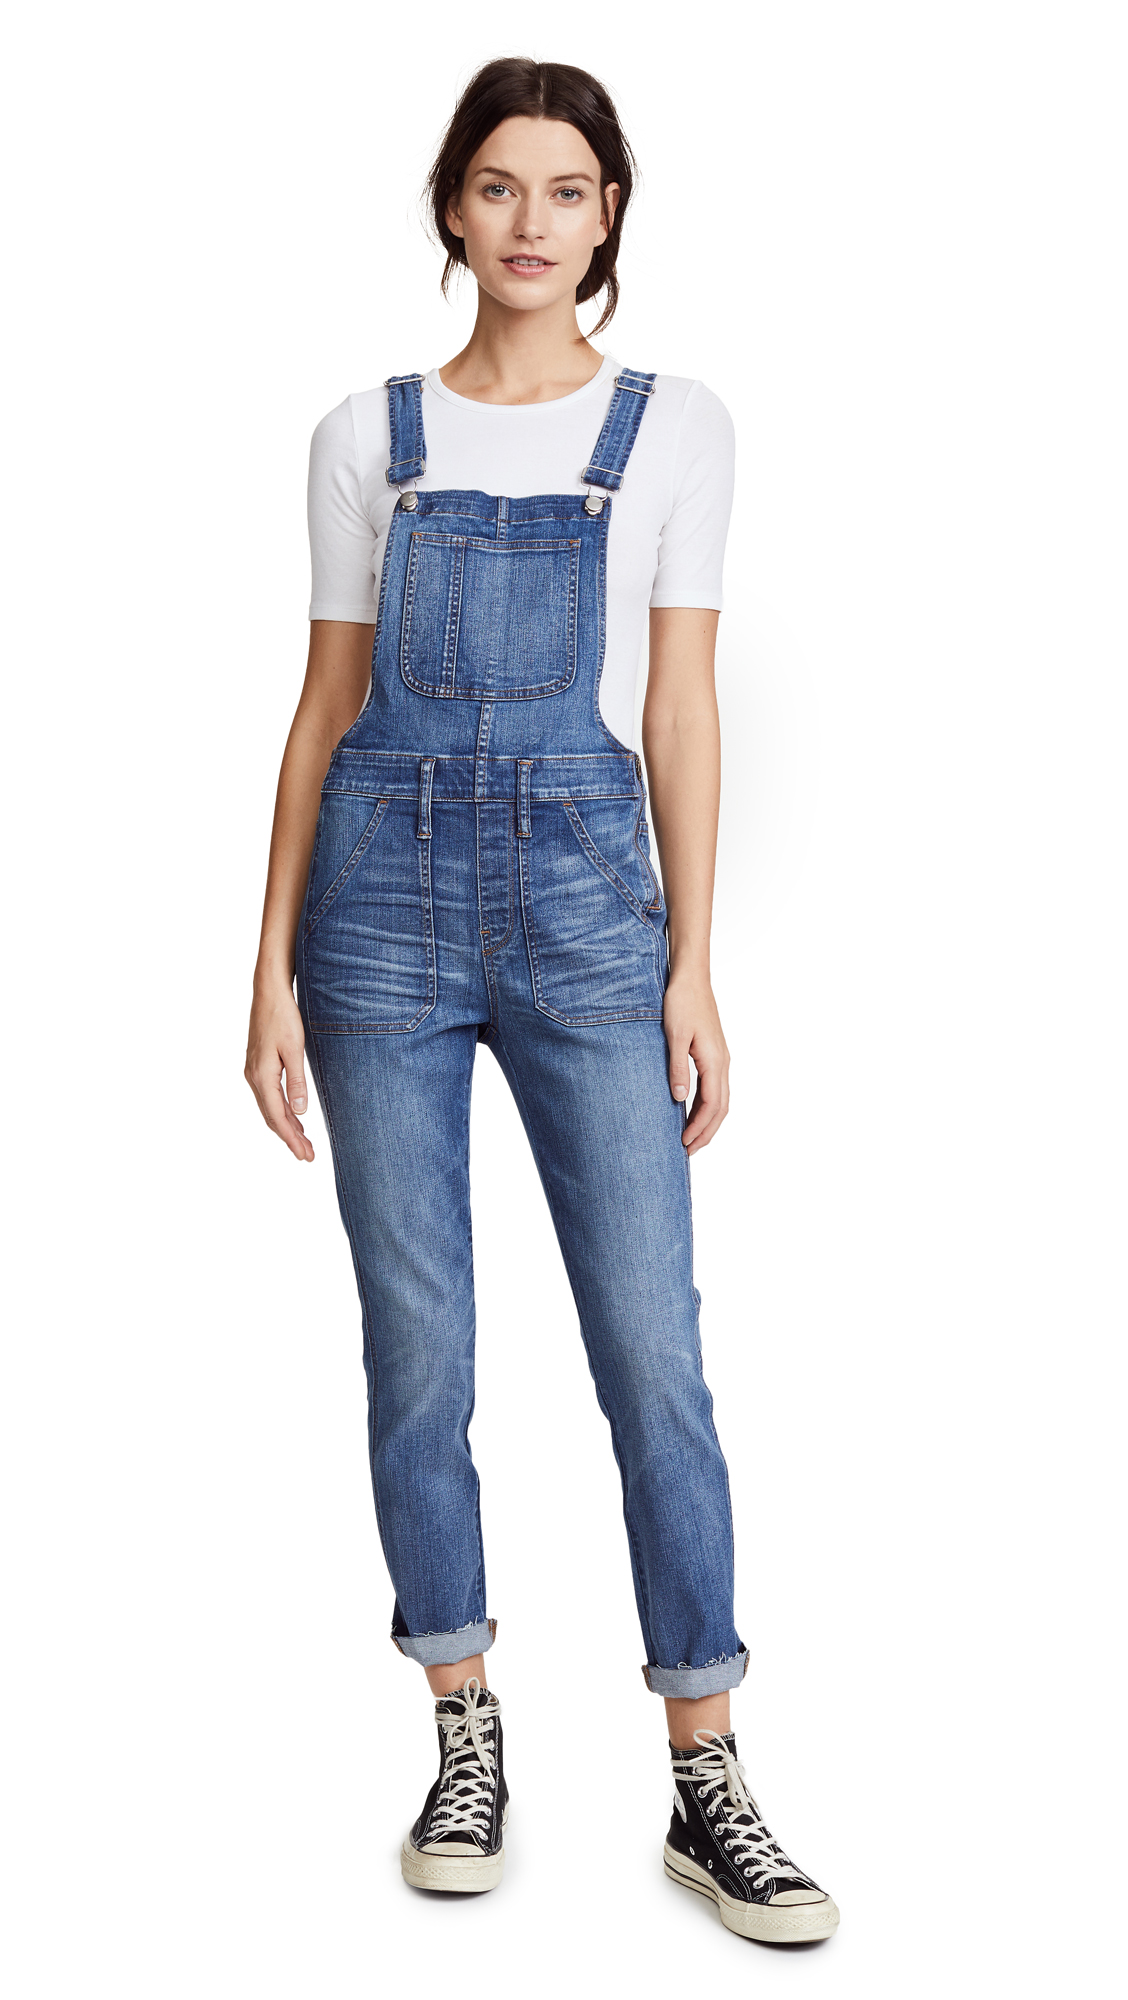 Madewell Skinny Indigo Overalls with Raw Hem In Indigo